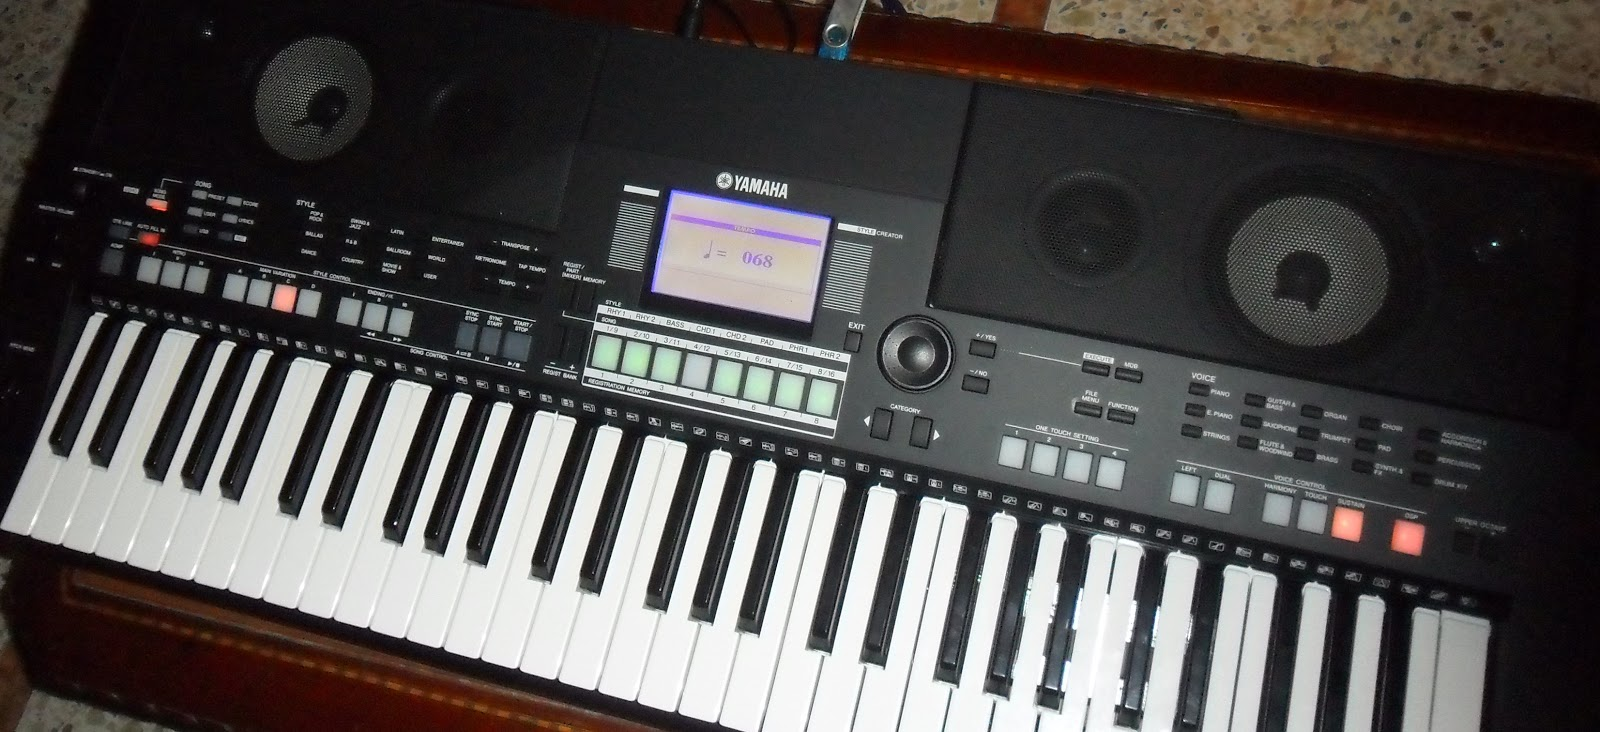 Yamaha voices download free